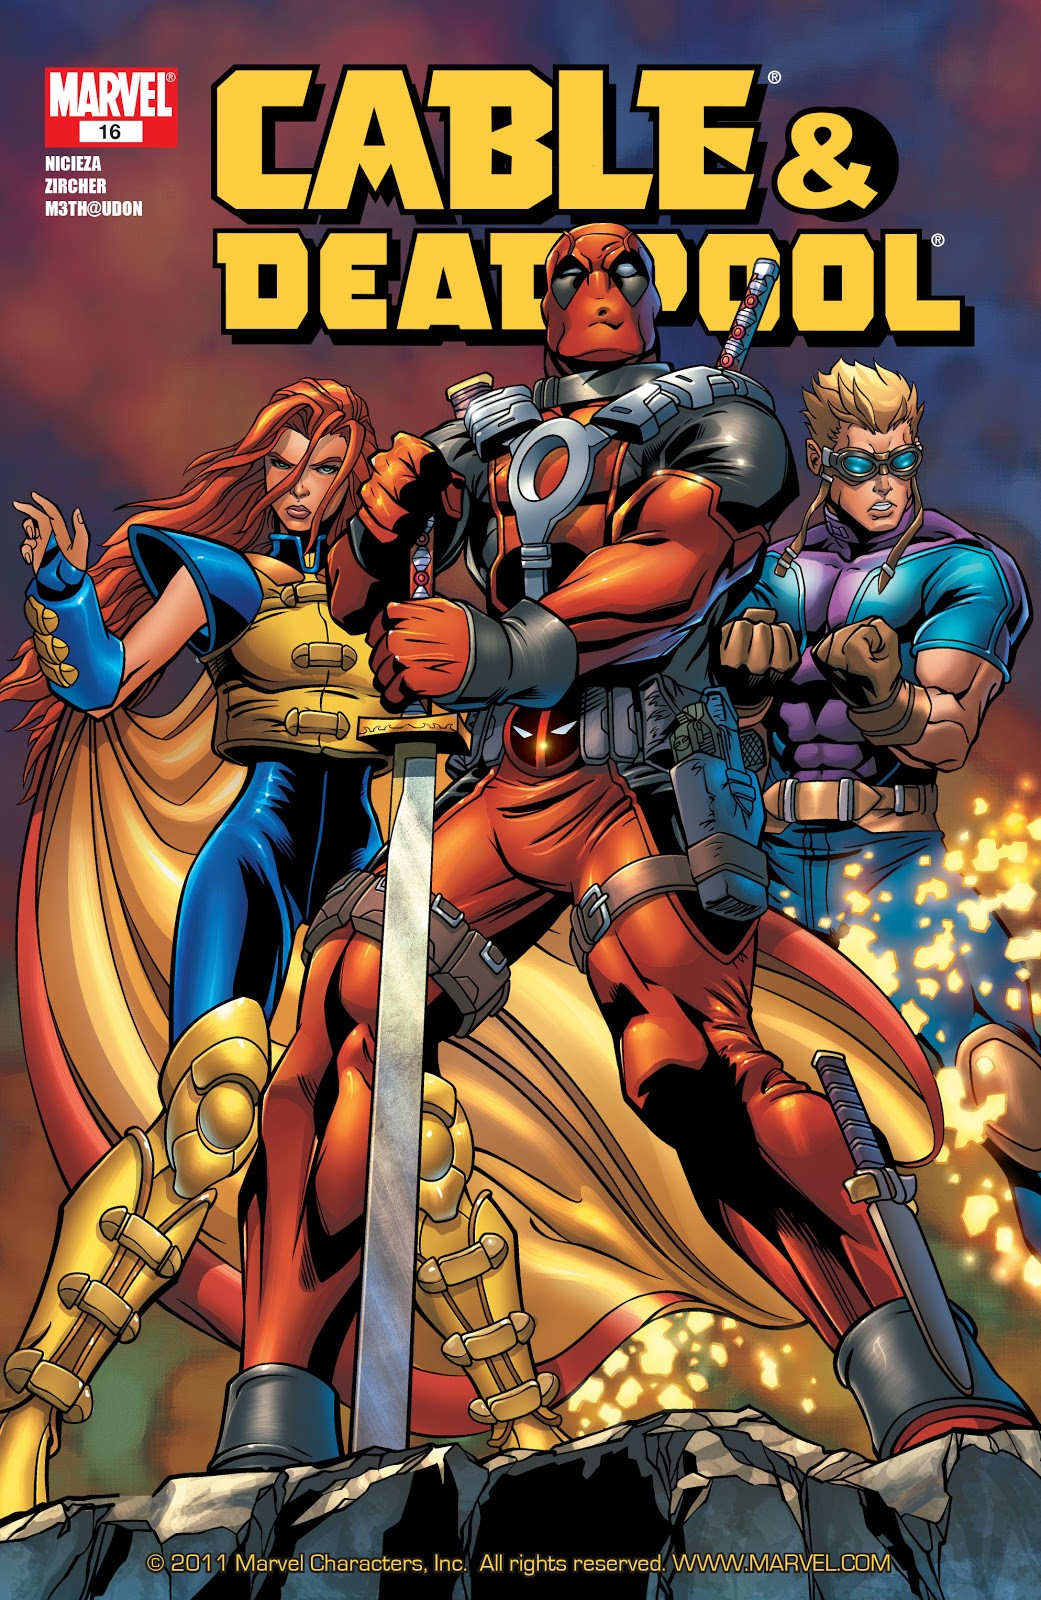 Cable & Deadpool Vol 1 16.jpg